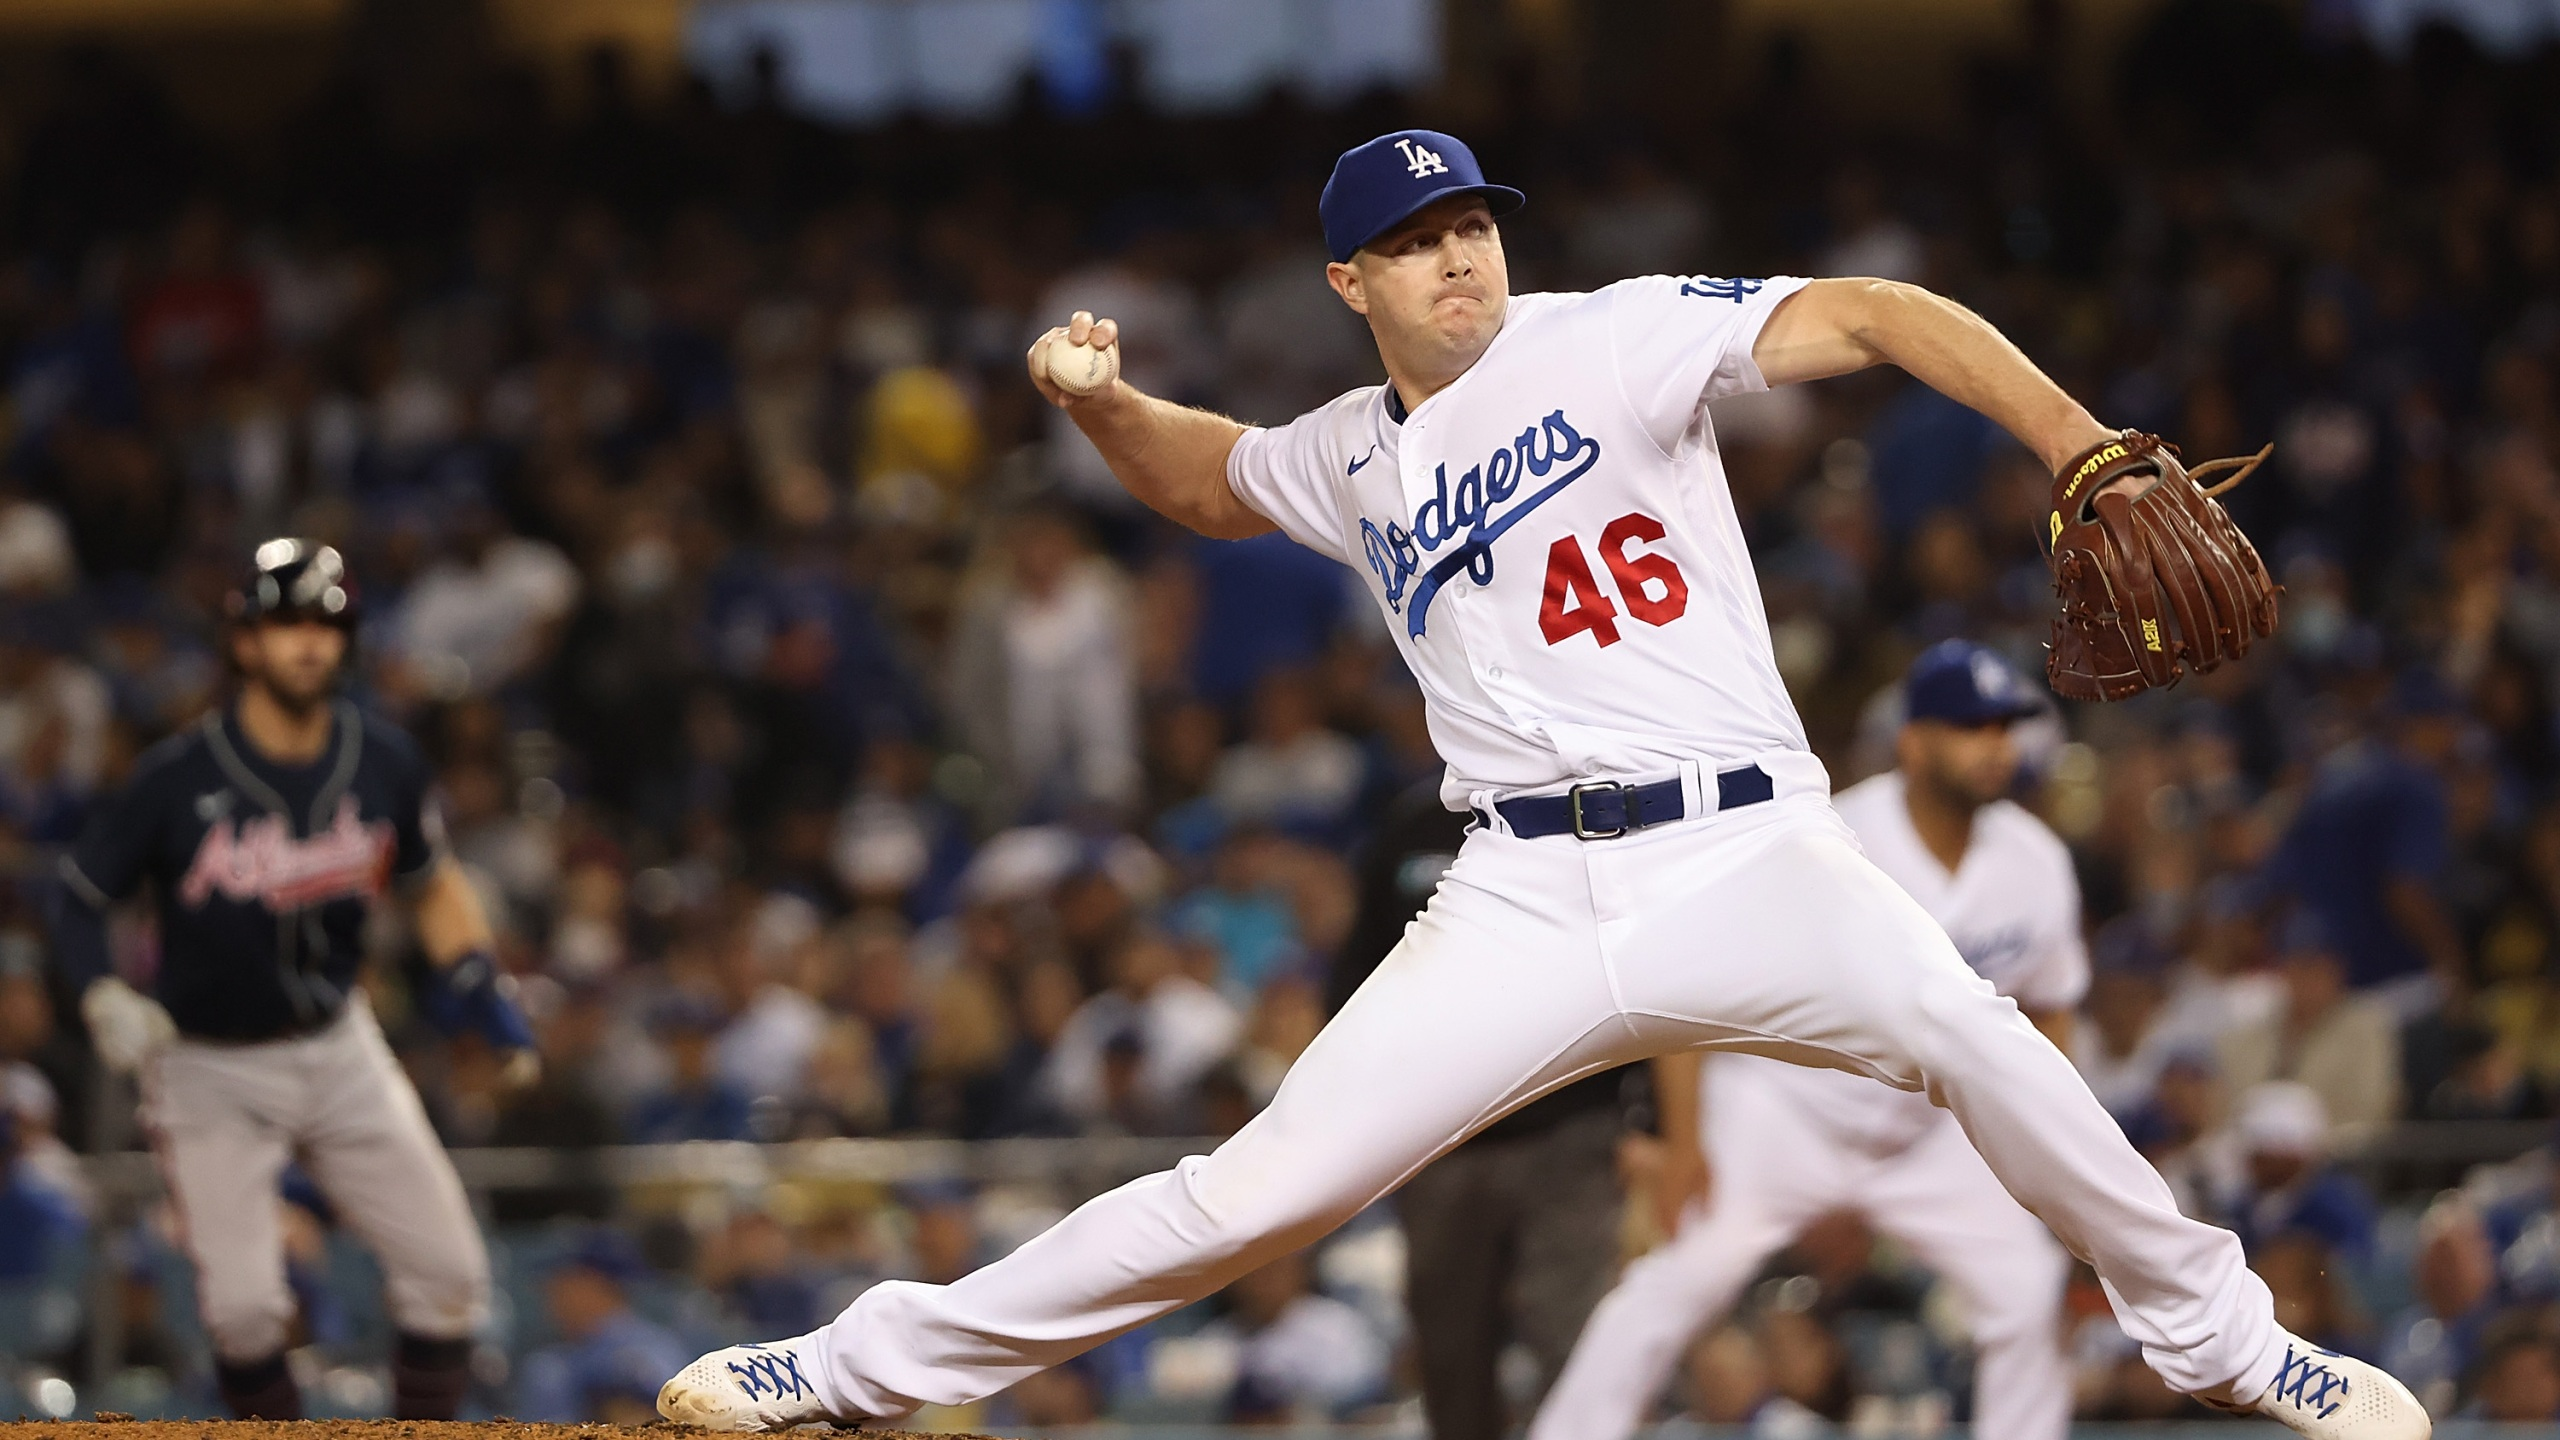 Corey Knebel #46 of the Los Angeles Dodgers throws a pitch during the eighth inning of Game Five of the National League Championship Series against the Atlanta Braves at Dodger Stadium on Oct. 21, 2021, in Los Angeles, California. (Harry How/Getty Images)